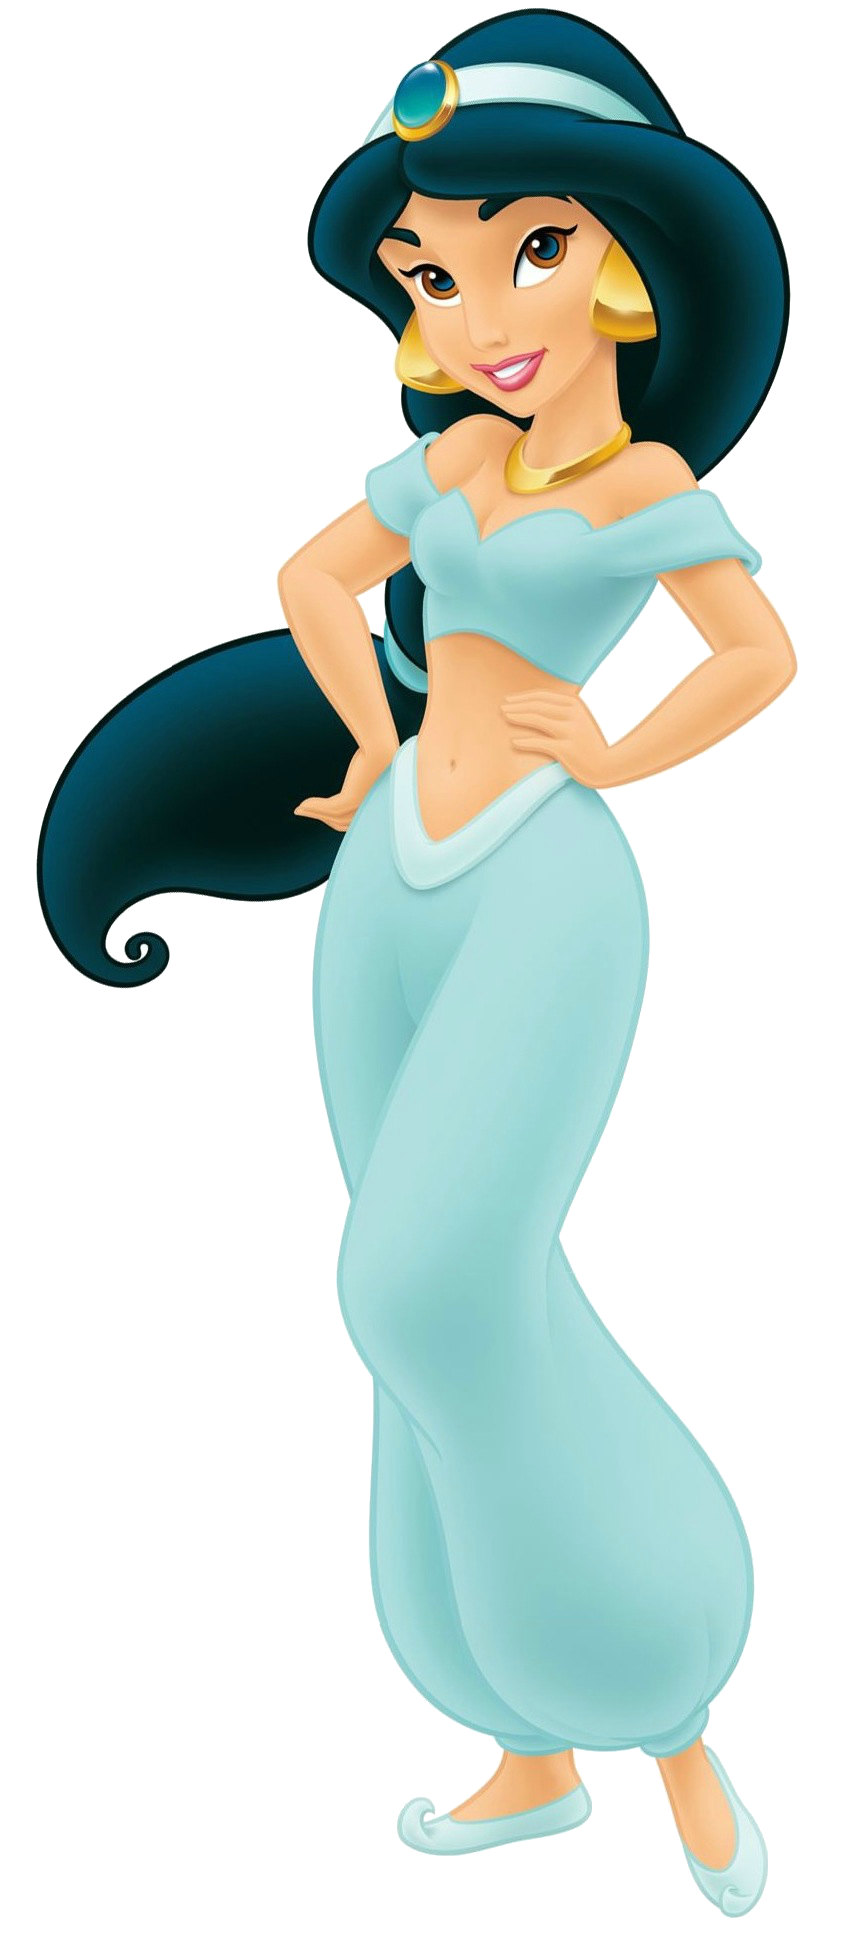 Jasmine princess with crown clipart clipart transparent Princess Jasmine PNG Transparent Princess Jasmine.PNG Images. | PlusPNG clipart transparent